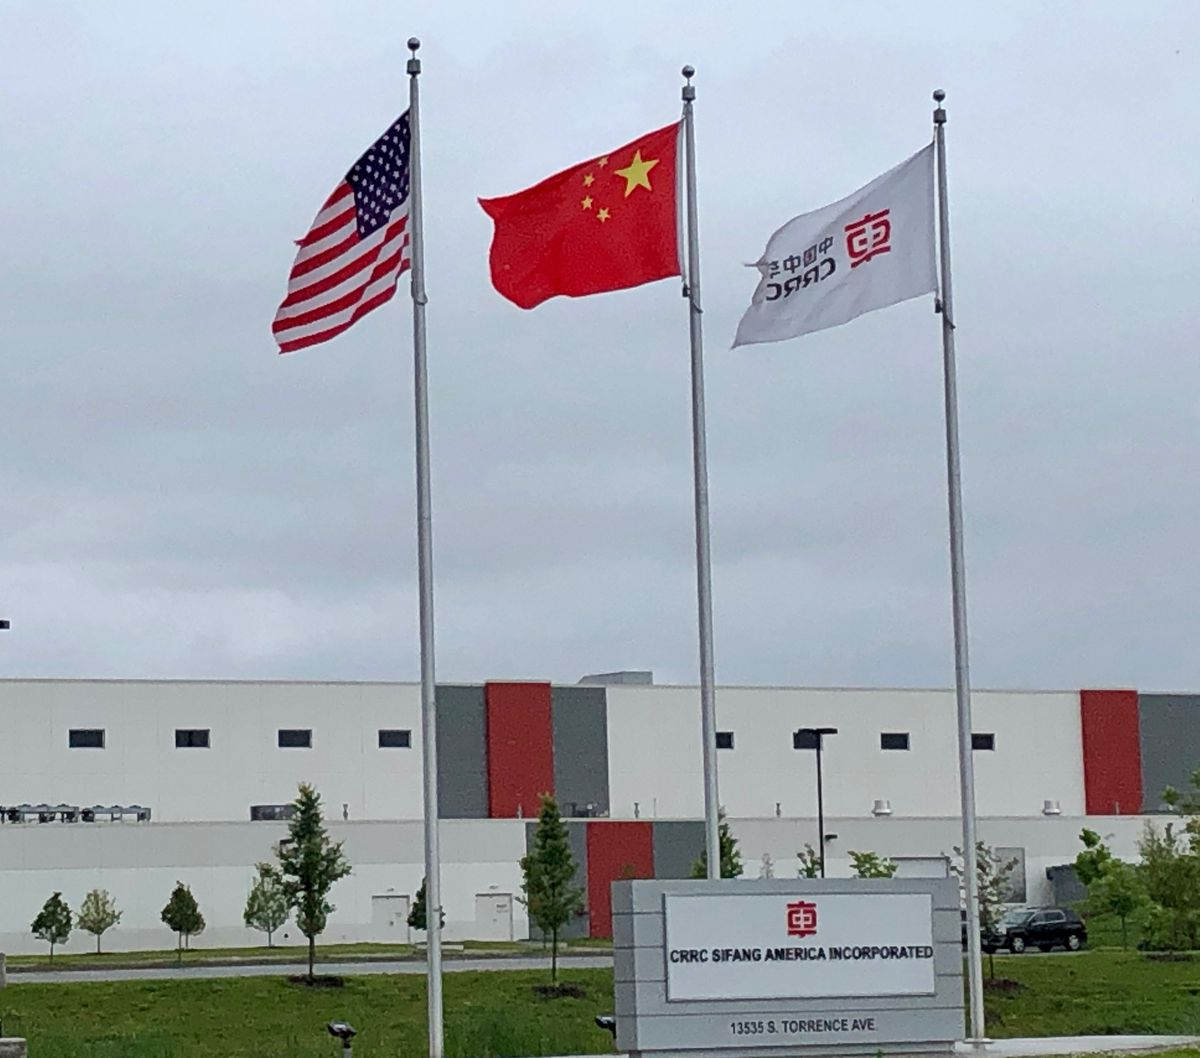 Three flags fly in front of the CRRC Sifang American plant on the South Side of Chicago.